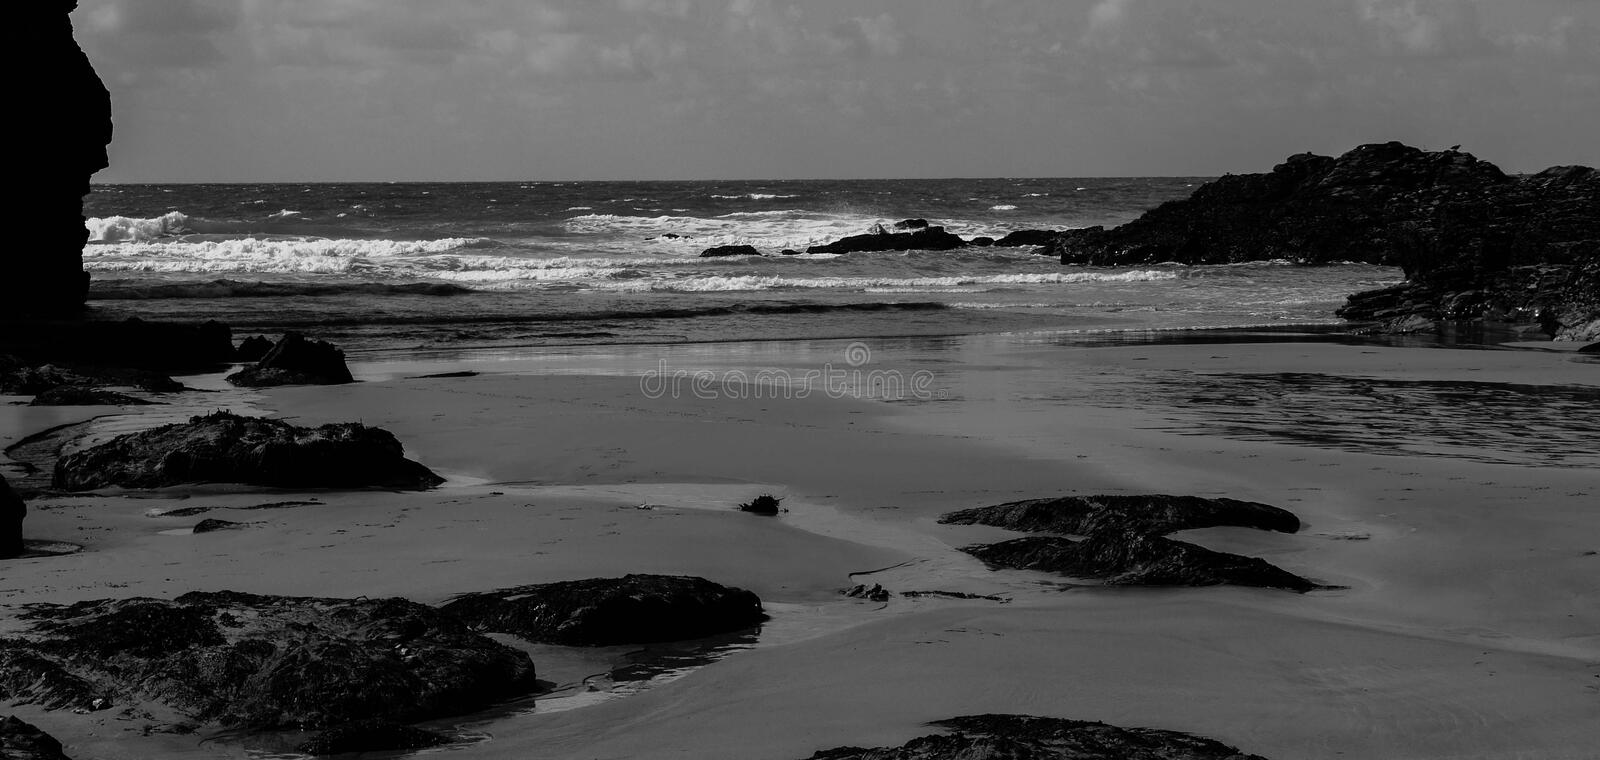 Download whipsiderry beach cornwall england black and white stock image image of england beach